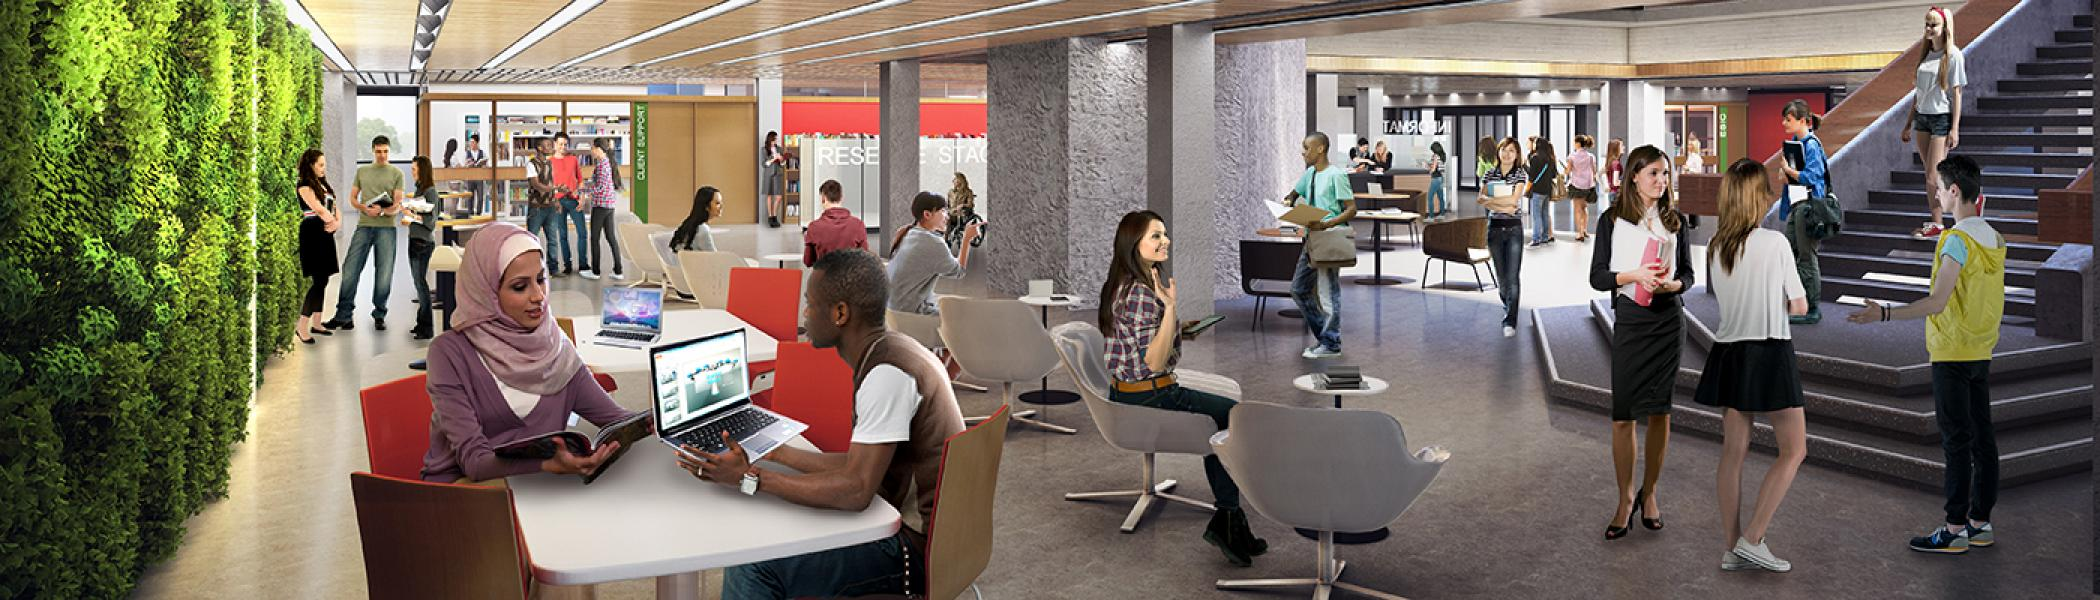 Digital mockup of the first floor of the Bata library transformation with students walking around